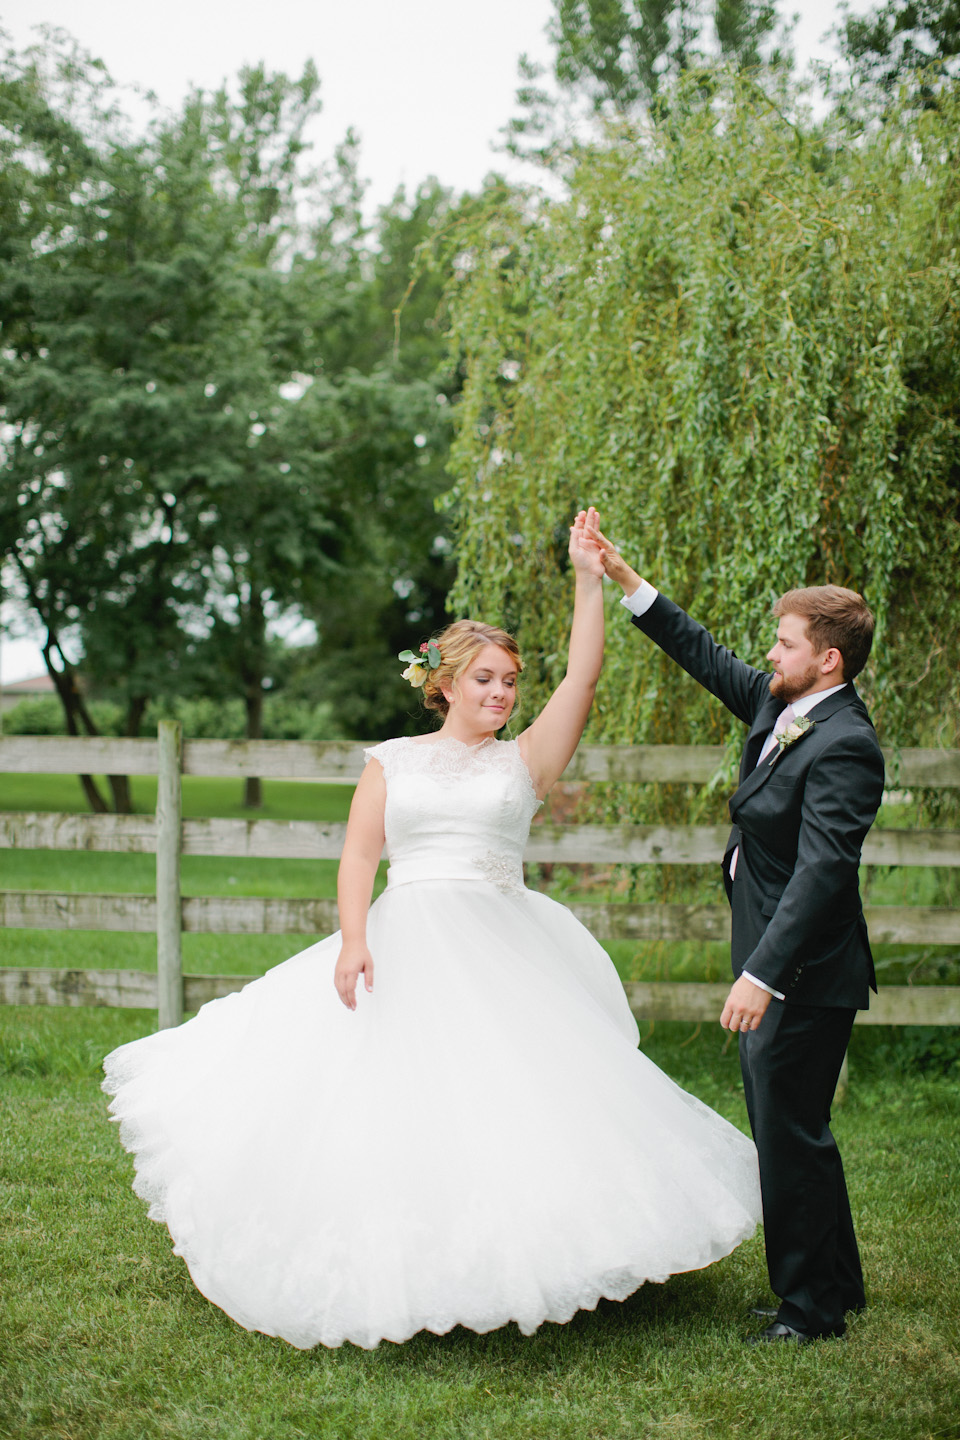 Bride and Groom twirling